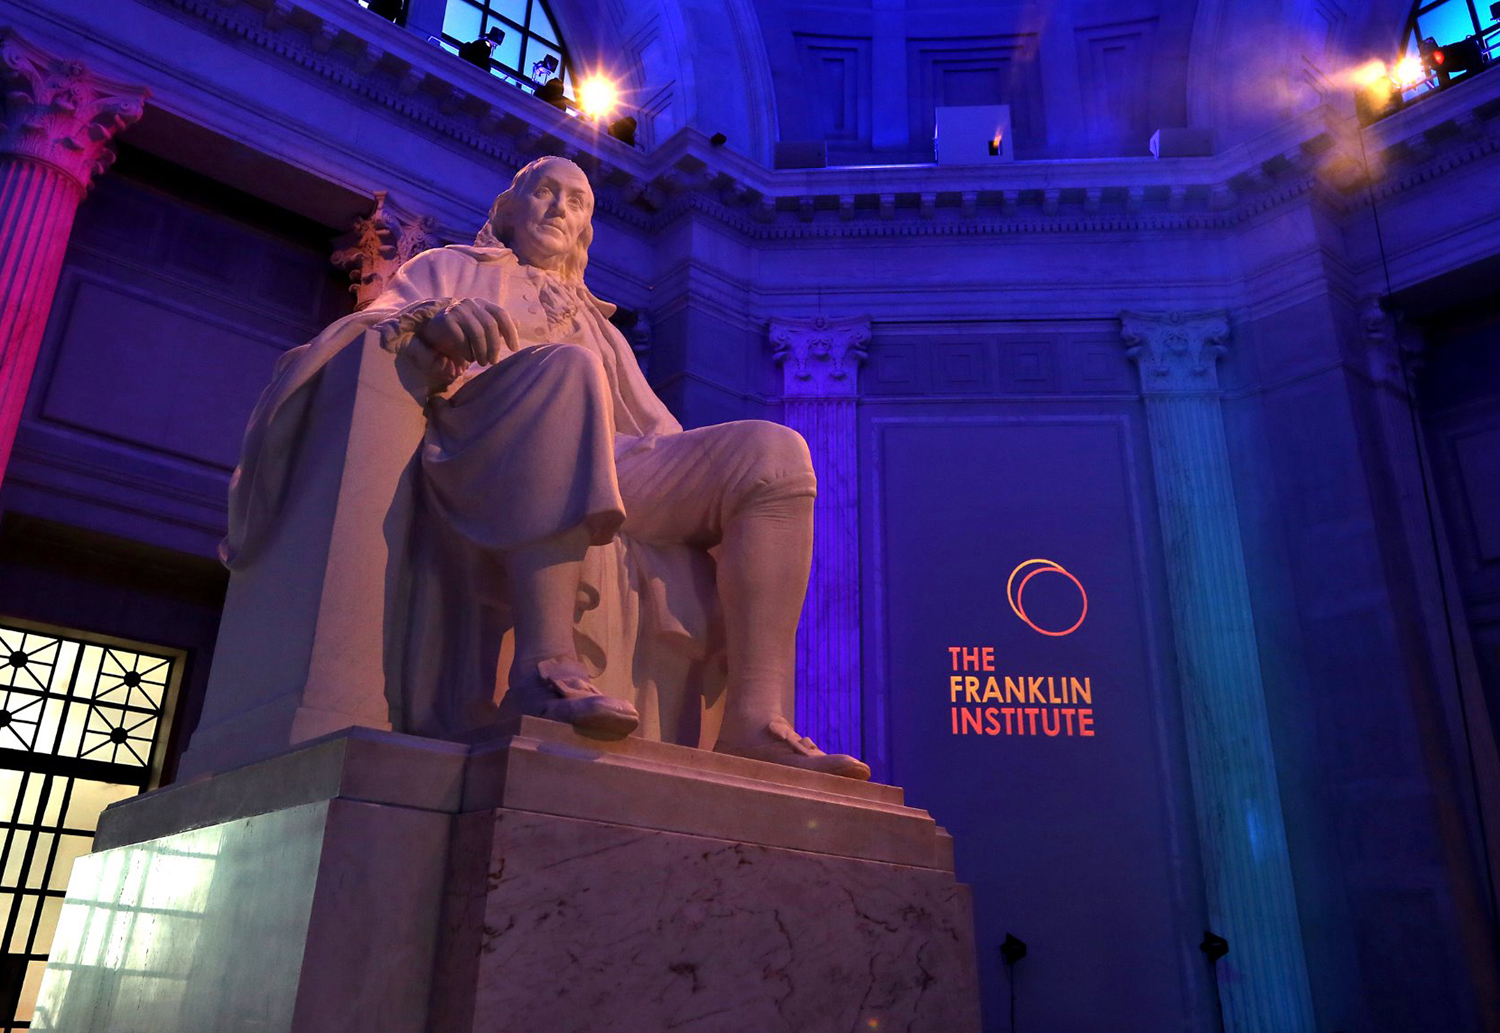 Benjamin Franklin Memorial at The Franklin Institute